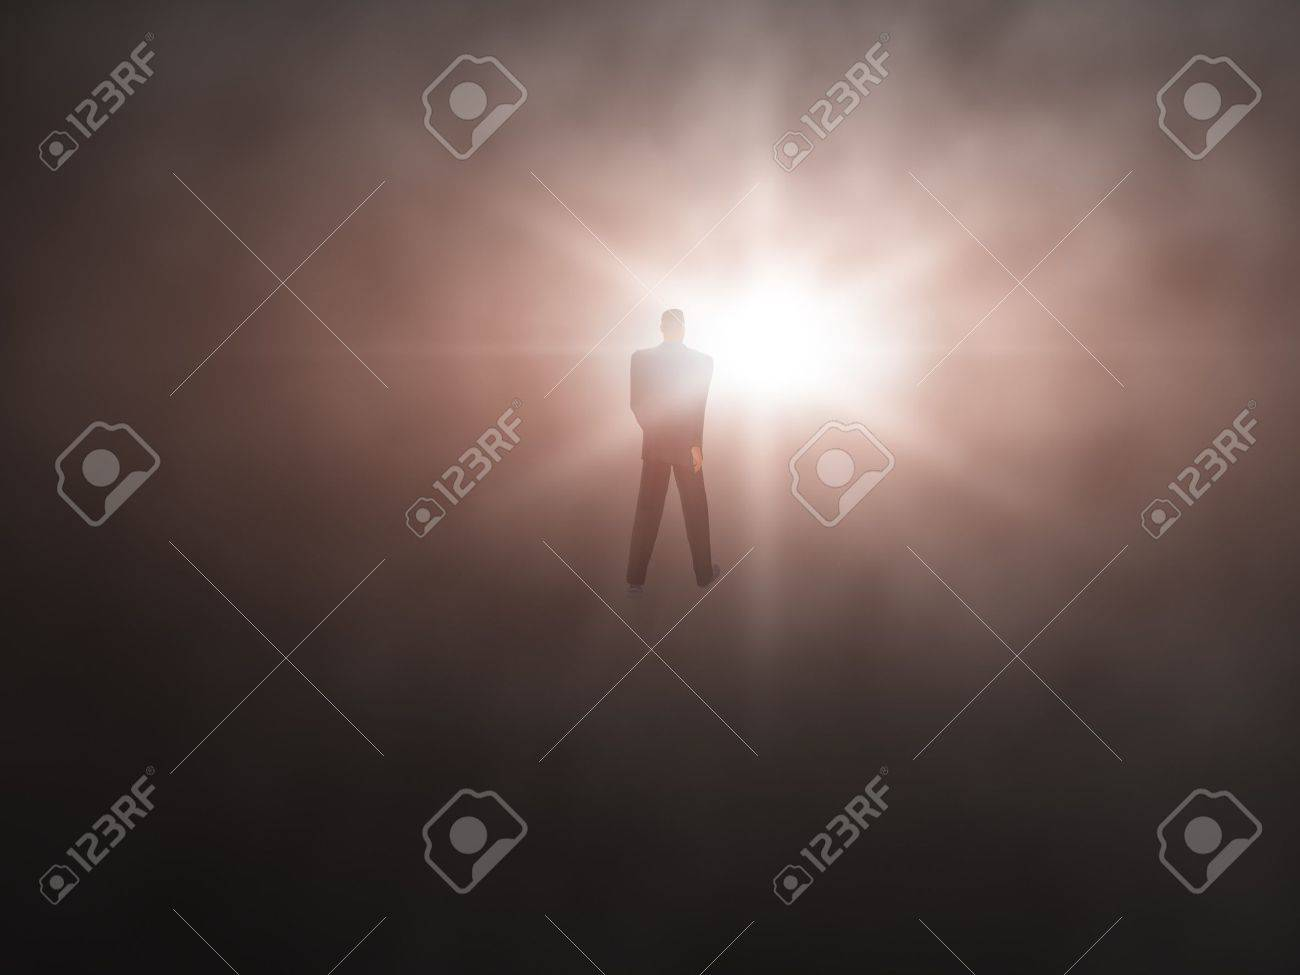 Man Walking From Dark Abyss Into A Bright Light Abstract Stock Photo